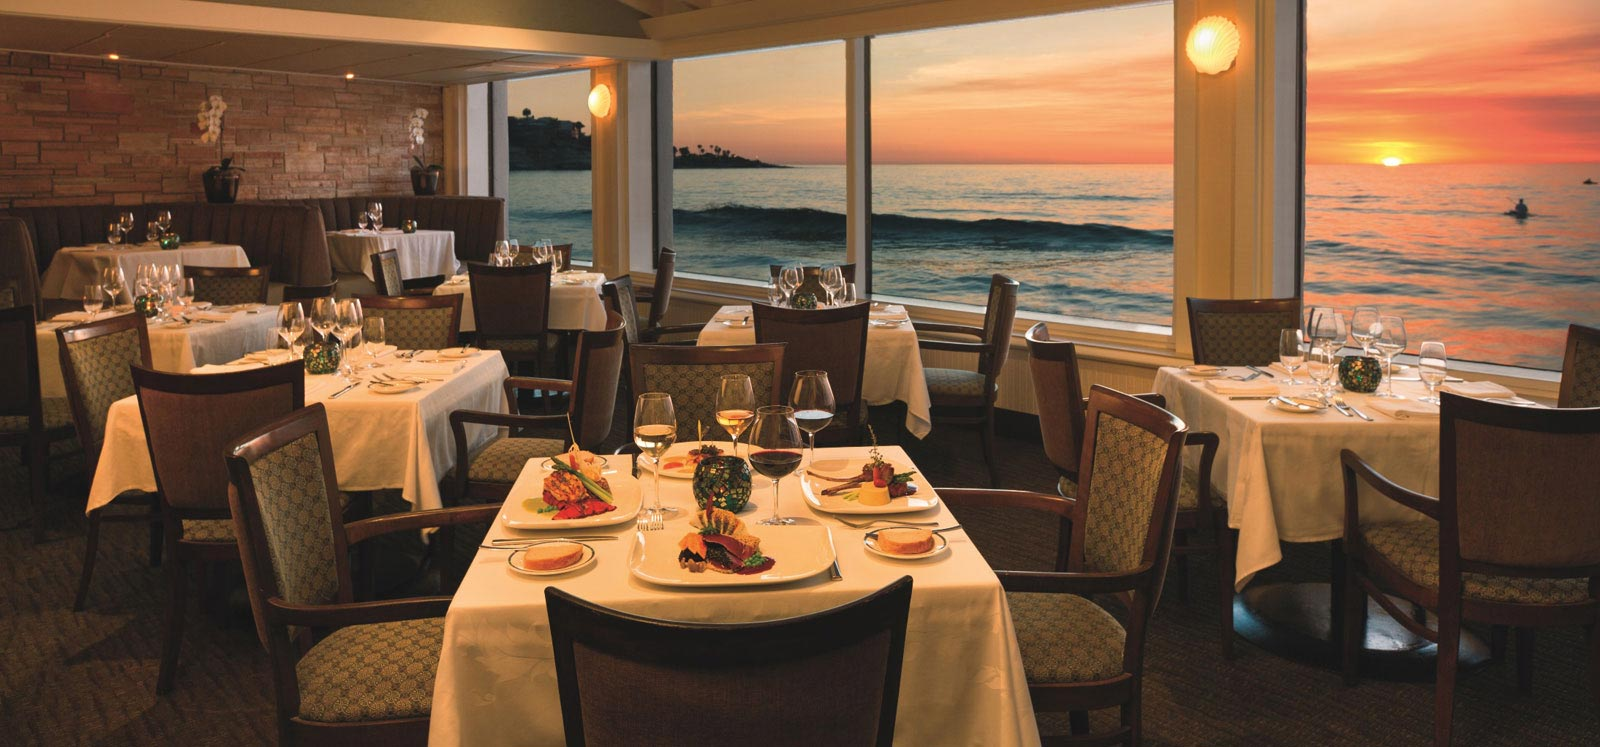 Phenomenal La Jolla Restaurant On The Water The Marine Room Theyellowbook Wood Chair Design Ideas Theyellowbookinfo